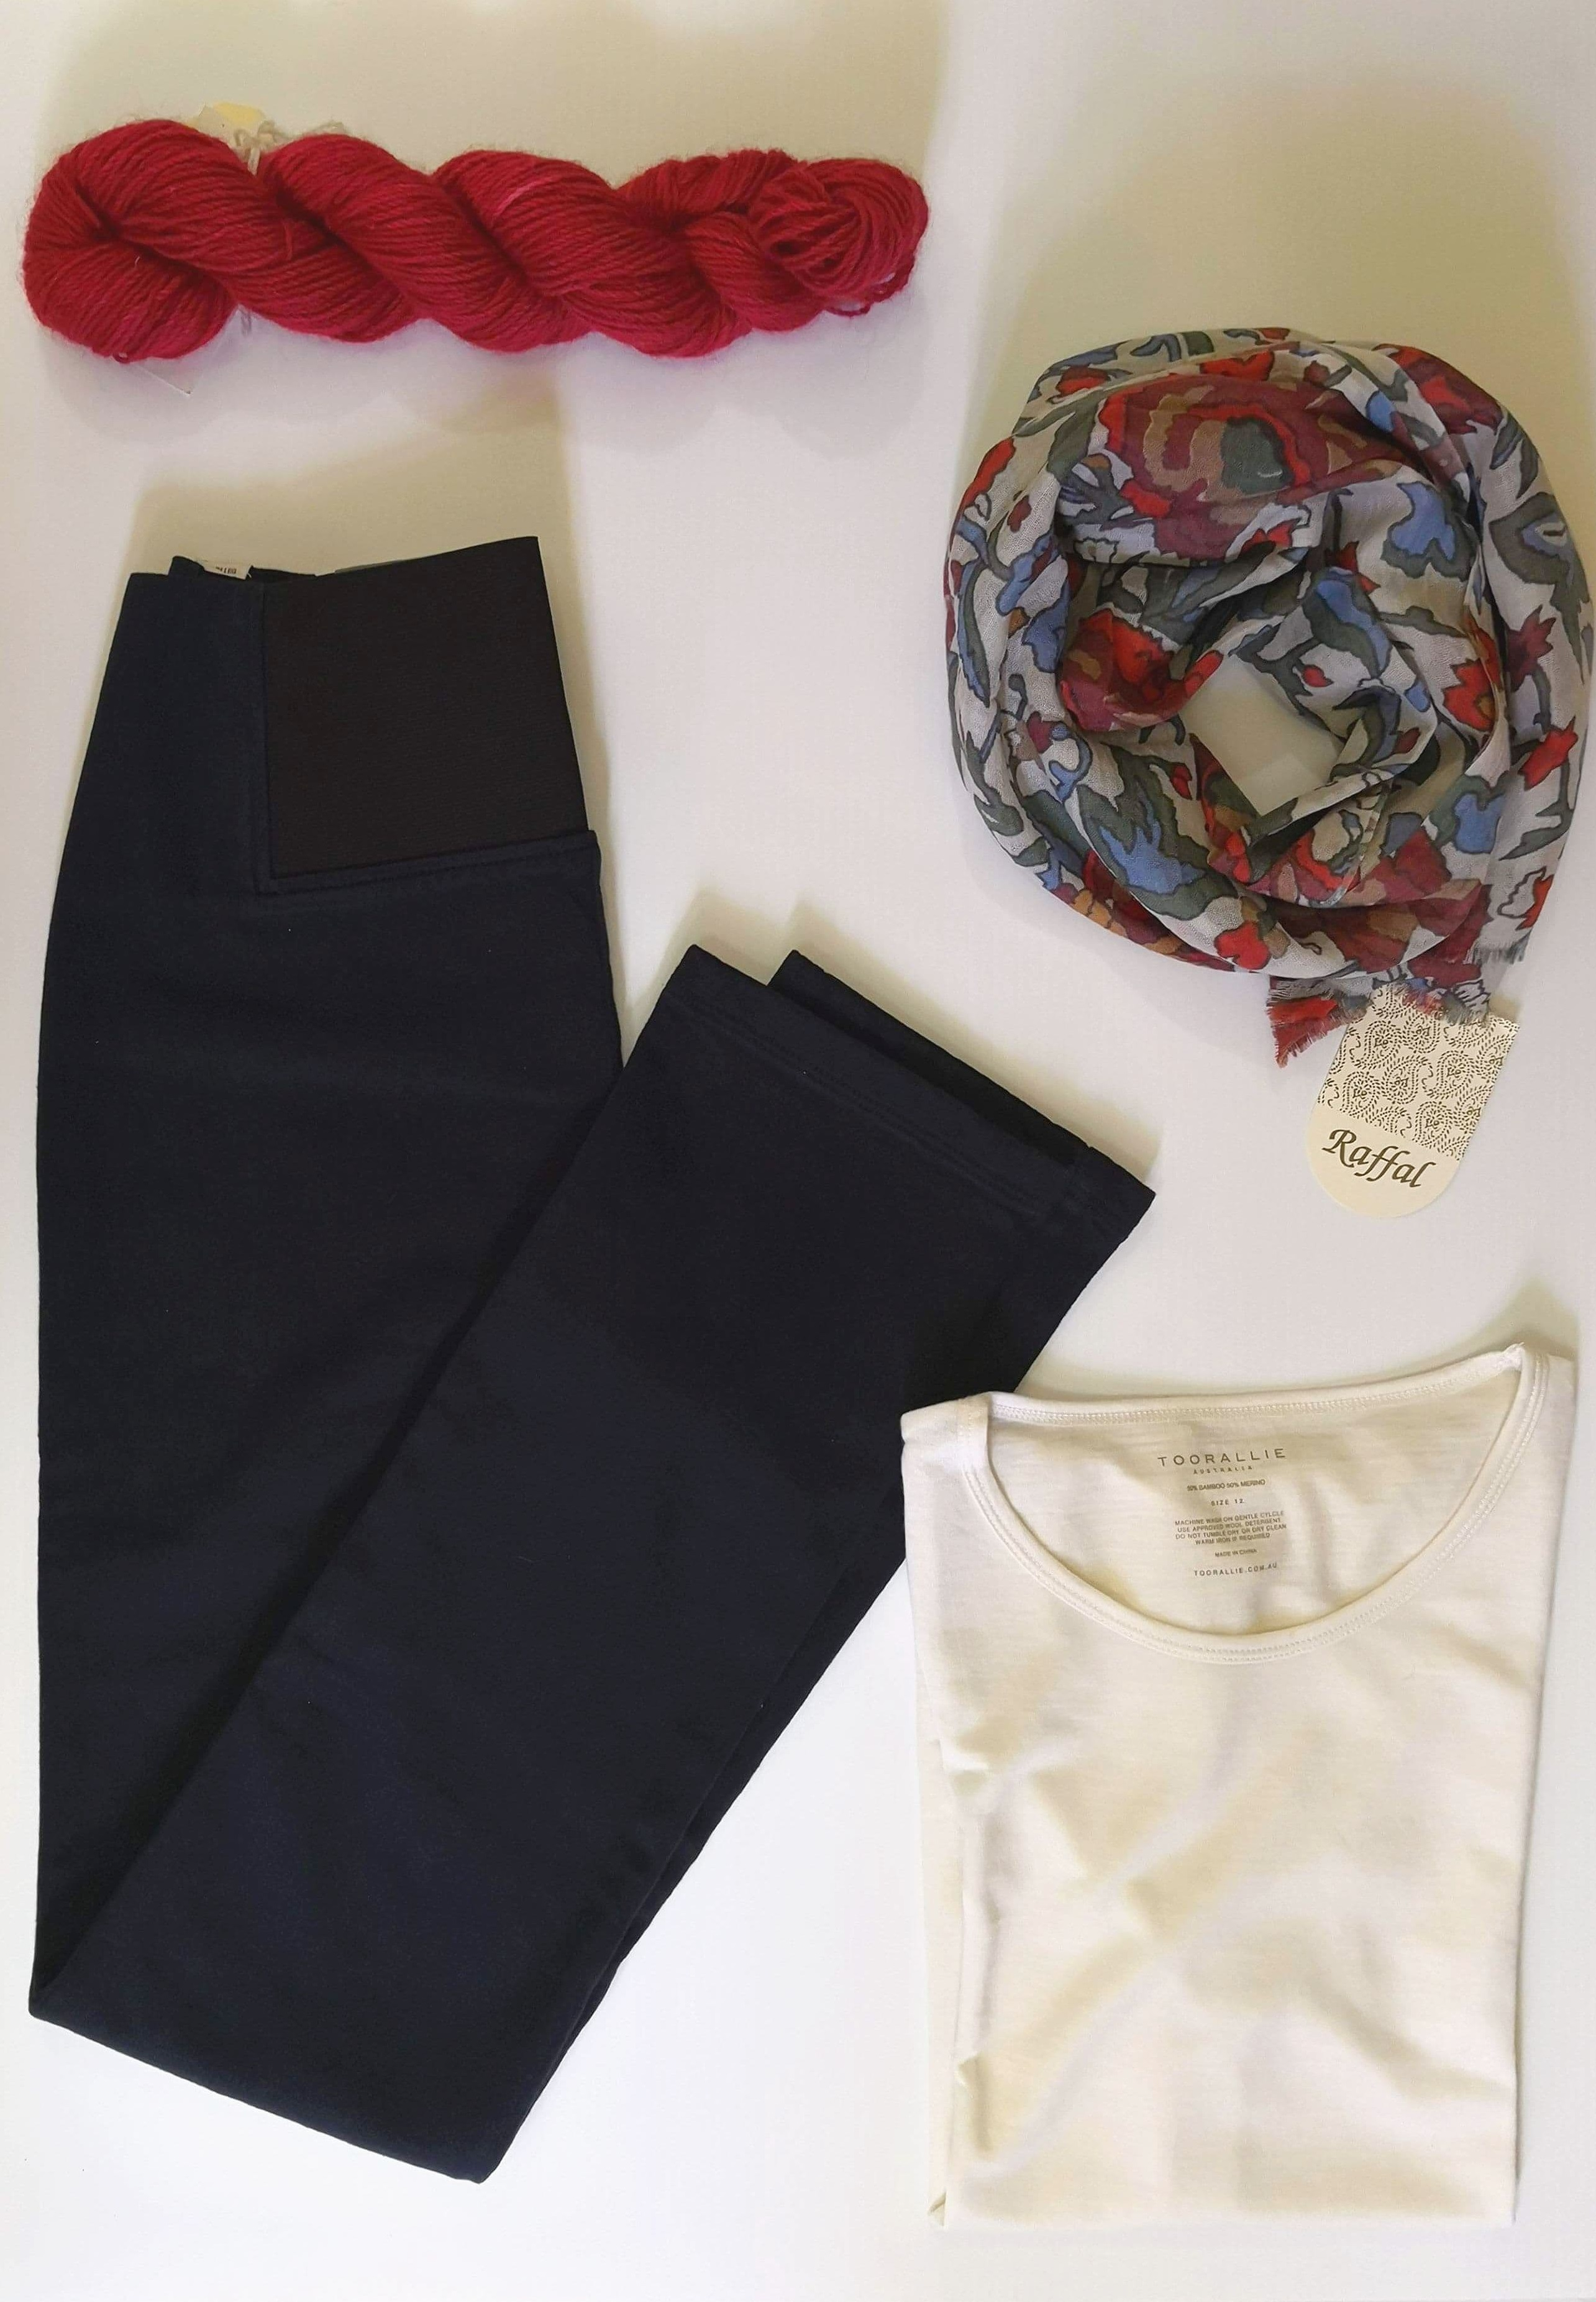 Ladies wear: jeans, t-shirt, scarf, woollen garments